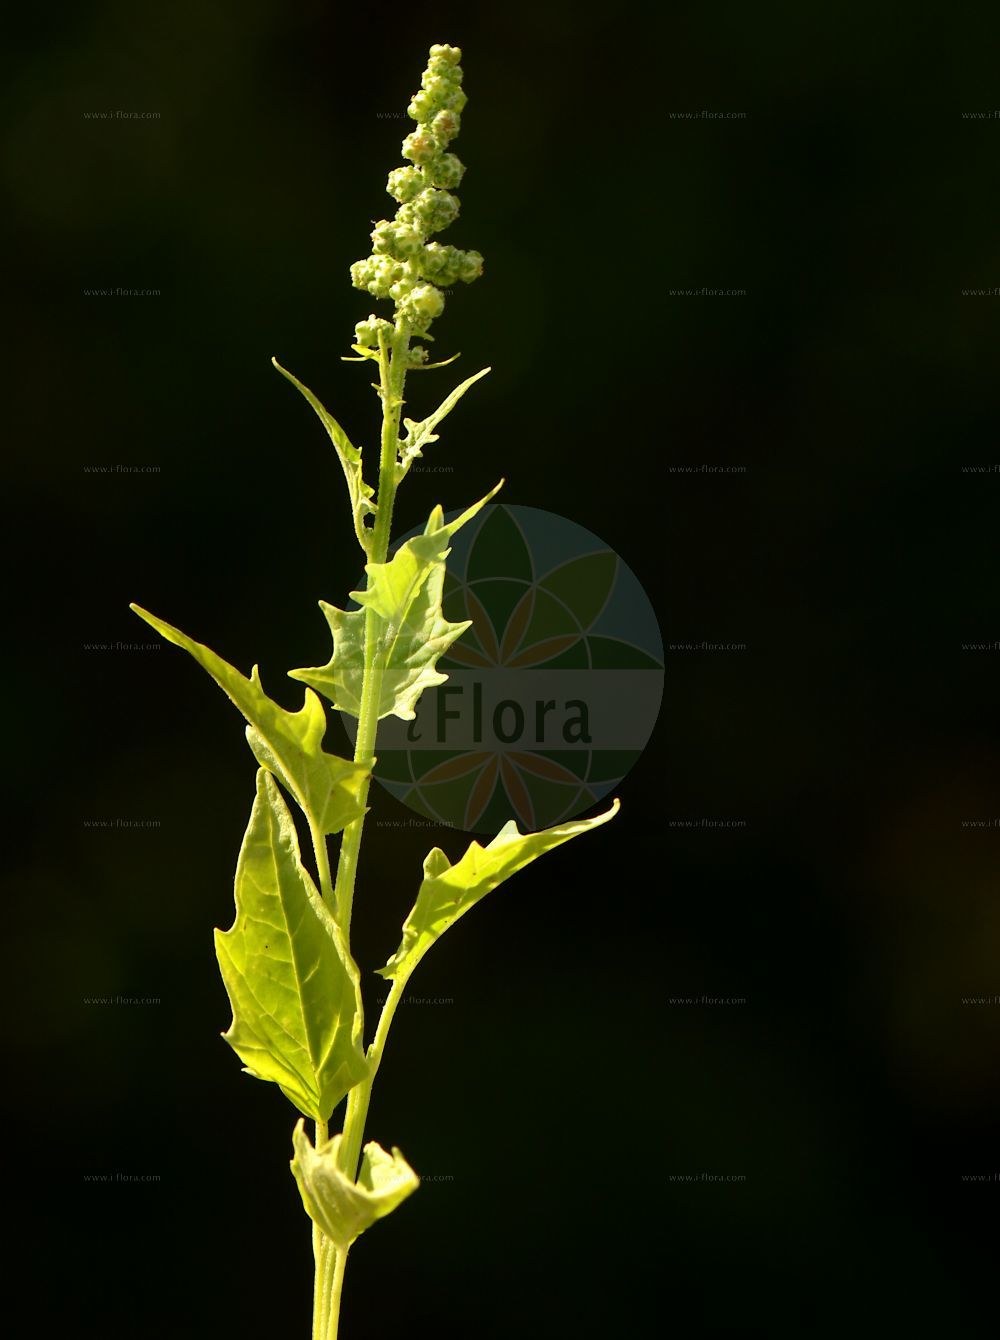 Foto von Chenopodiastrum hybridum (Breitblaettriger Gaensefuss - Maple-leaved Goosefoot). Das Bild zeigt Blatt und Bluete. Das Foto wurde in Wiesloch, Rhein-Neckar-Kreis, Baden-Wuerttemberg, Deutschland, Neckarland aufgenommen. ---- Photo of Chenopodiastrum hybridum (Breitblaettriger Gaensefuss - Maple-leaved Goosefoot).The image is showing leaf and flower.The picture was taken in Wiesloch, Rhein-Neckar district, Baden-Wuerttemberg, Germany, Neckarland.(Chenopodiastrum hybridum,Breitblaettriger Gaensefuss,Maple-leaved Goosefoot,Chenopodium angulosum,Chenopodium hybridum,Bastard-Gaensefuss,Sautod-Gaensefuss,Stechapfelblaettriger Gaensefuss,Bigseed Goosefoot,Maple-leaf Goosefoot,Sowbane,Chenopodiastrum,Amaranthaceae,Fuchsschwanzgewaechse,Pigweed family,Blatt,Bluete,leaf,flower)